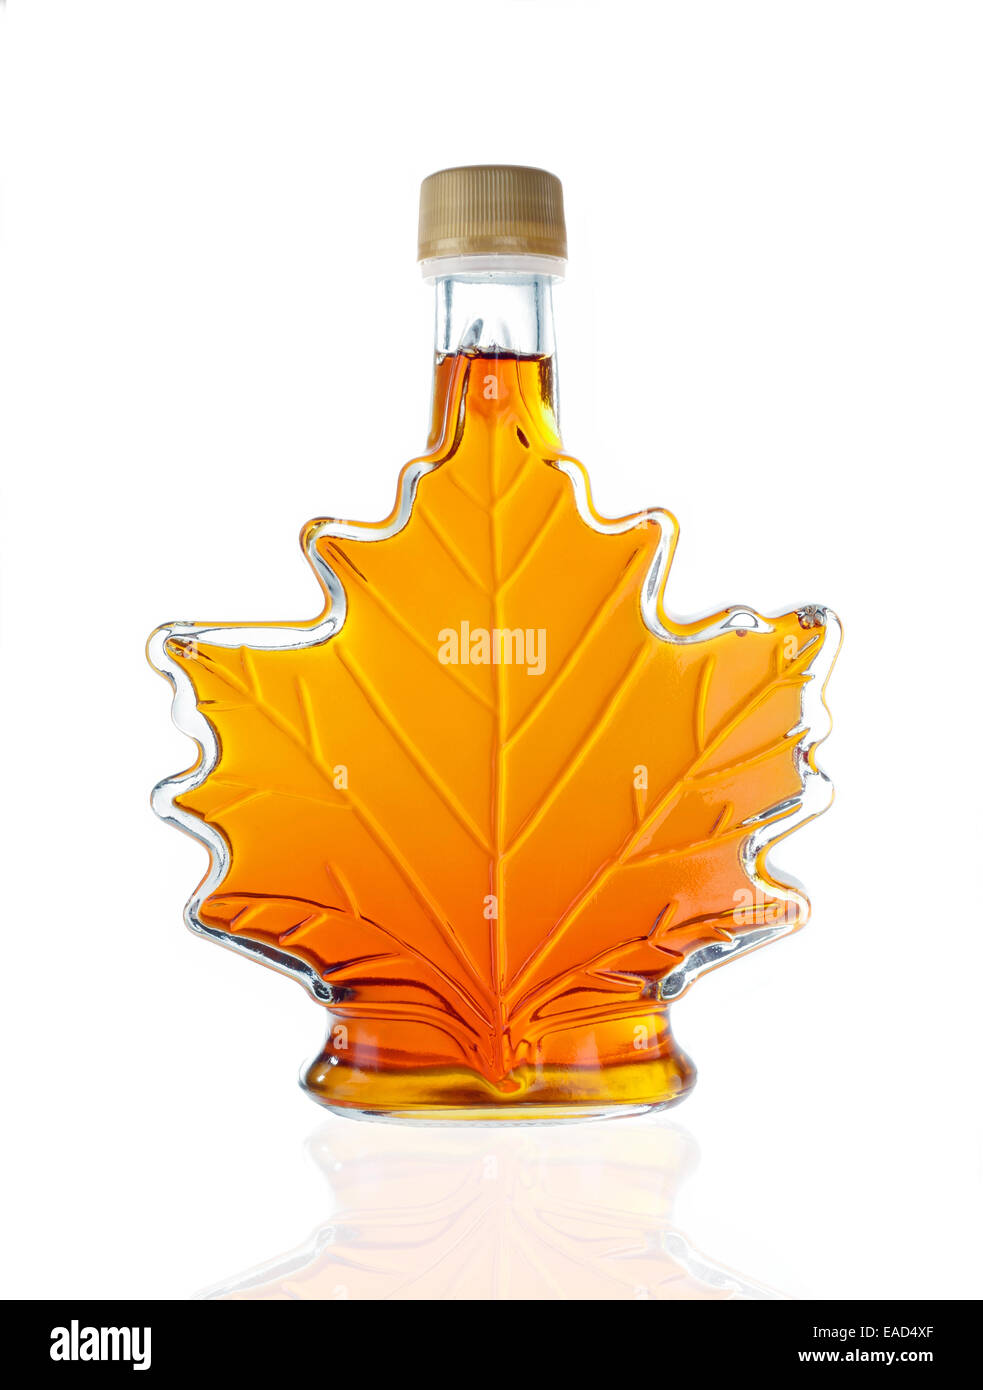 canadian-maple-leaf-shaped-glass-bottle-